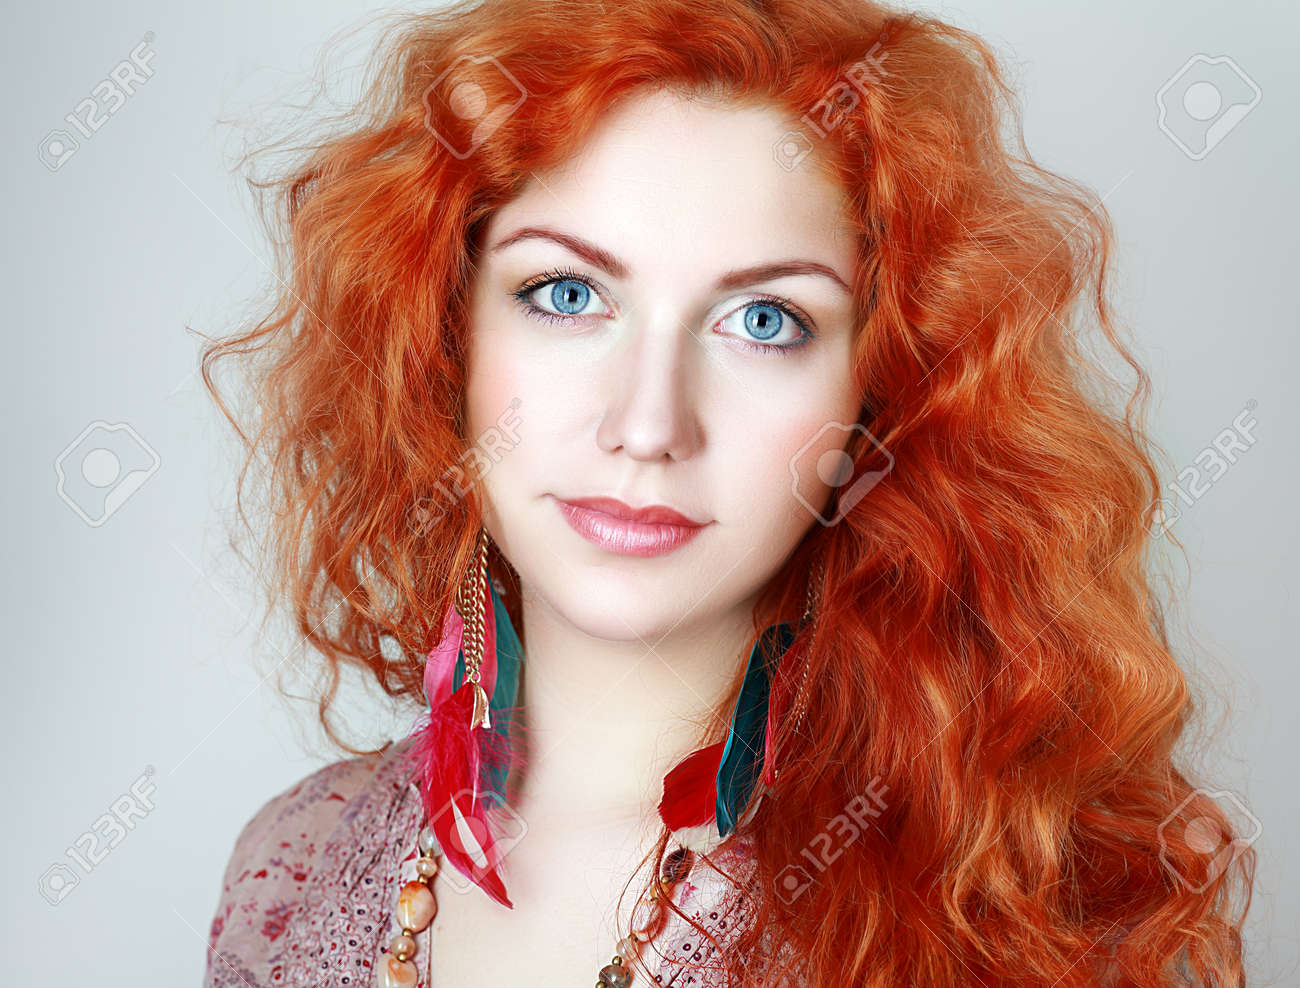 Astonishing Portrait Of A Young Woman With Red Hair And Blue Eyes Stock Photo Hairstyles For Women Draintrainus